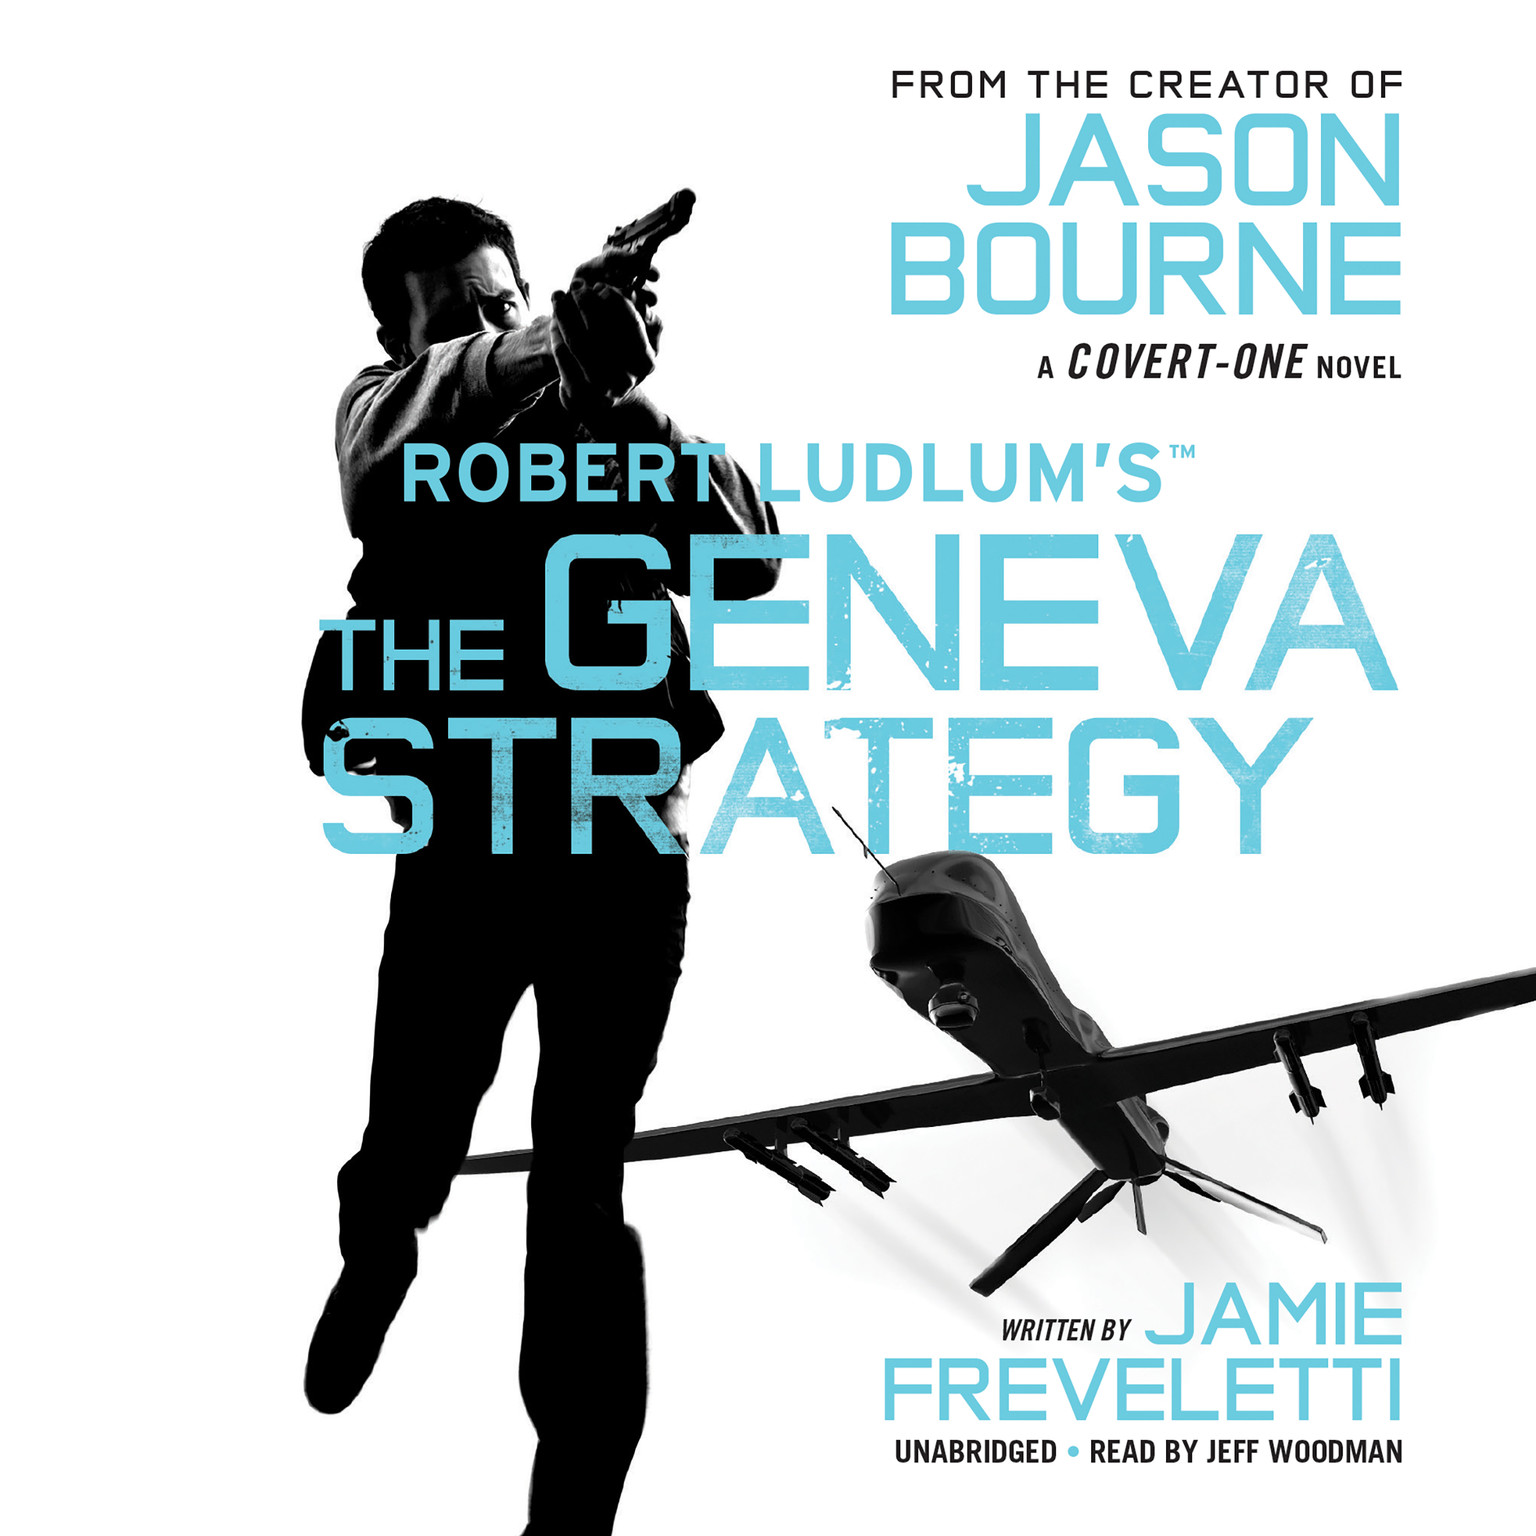 Printable Robert Ludlum's™ The Geneva Strategy Audiobook Cover Art